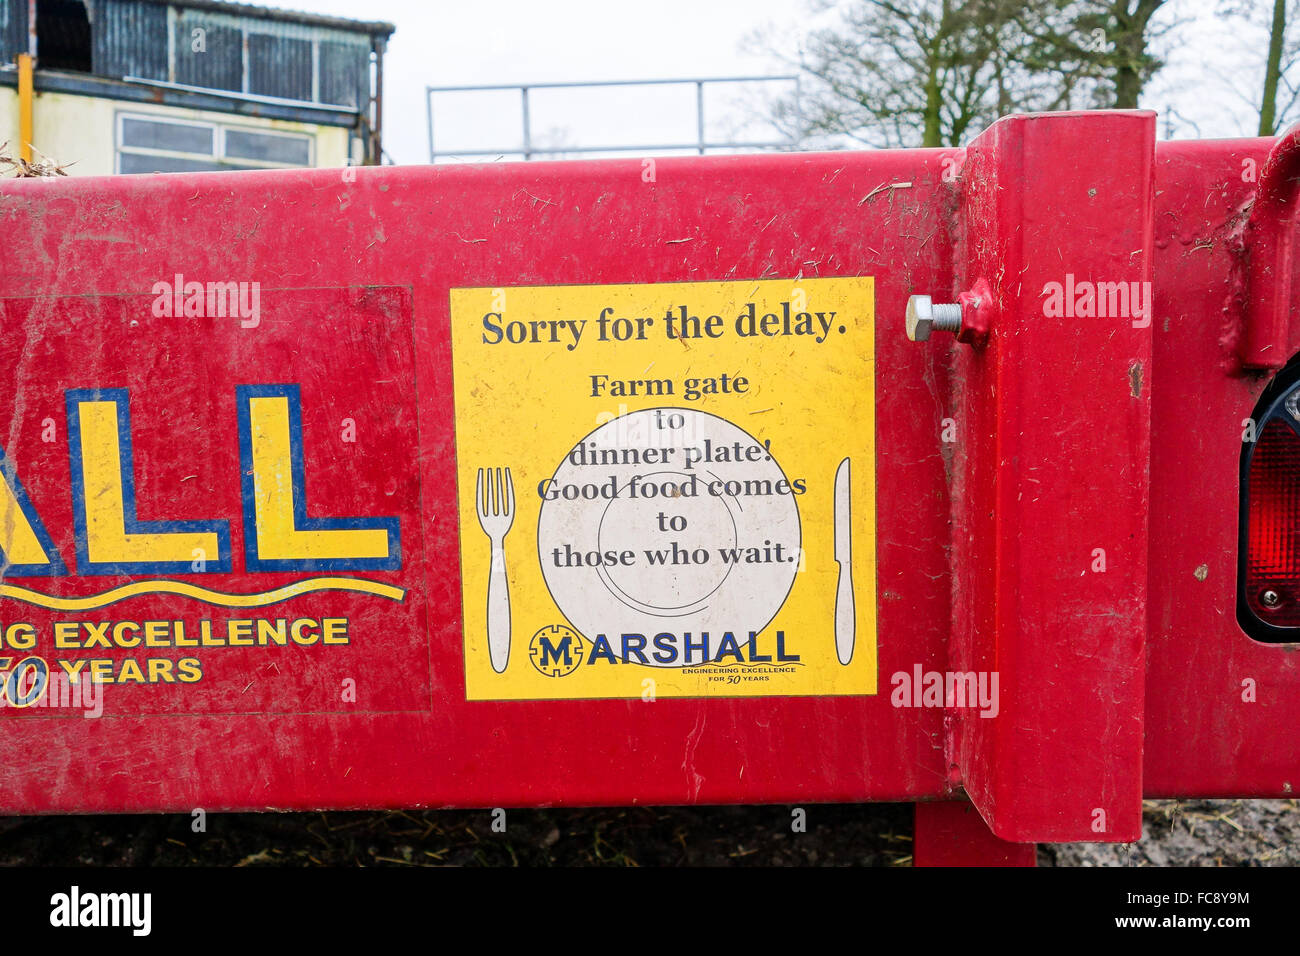 A sign on the back of farm machinery saying 'sorry for the delay' - Stock Image